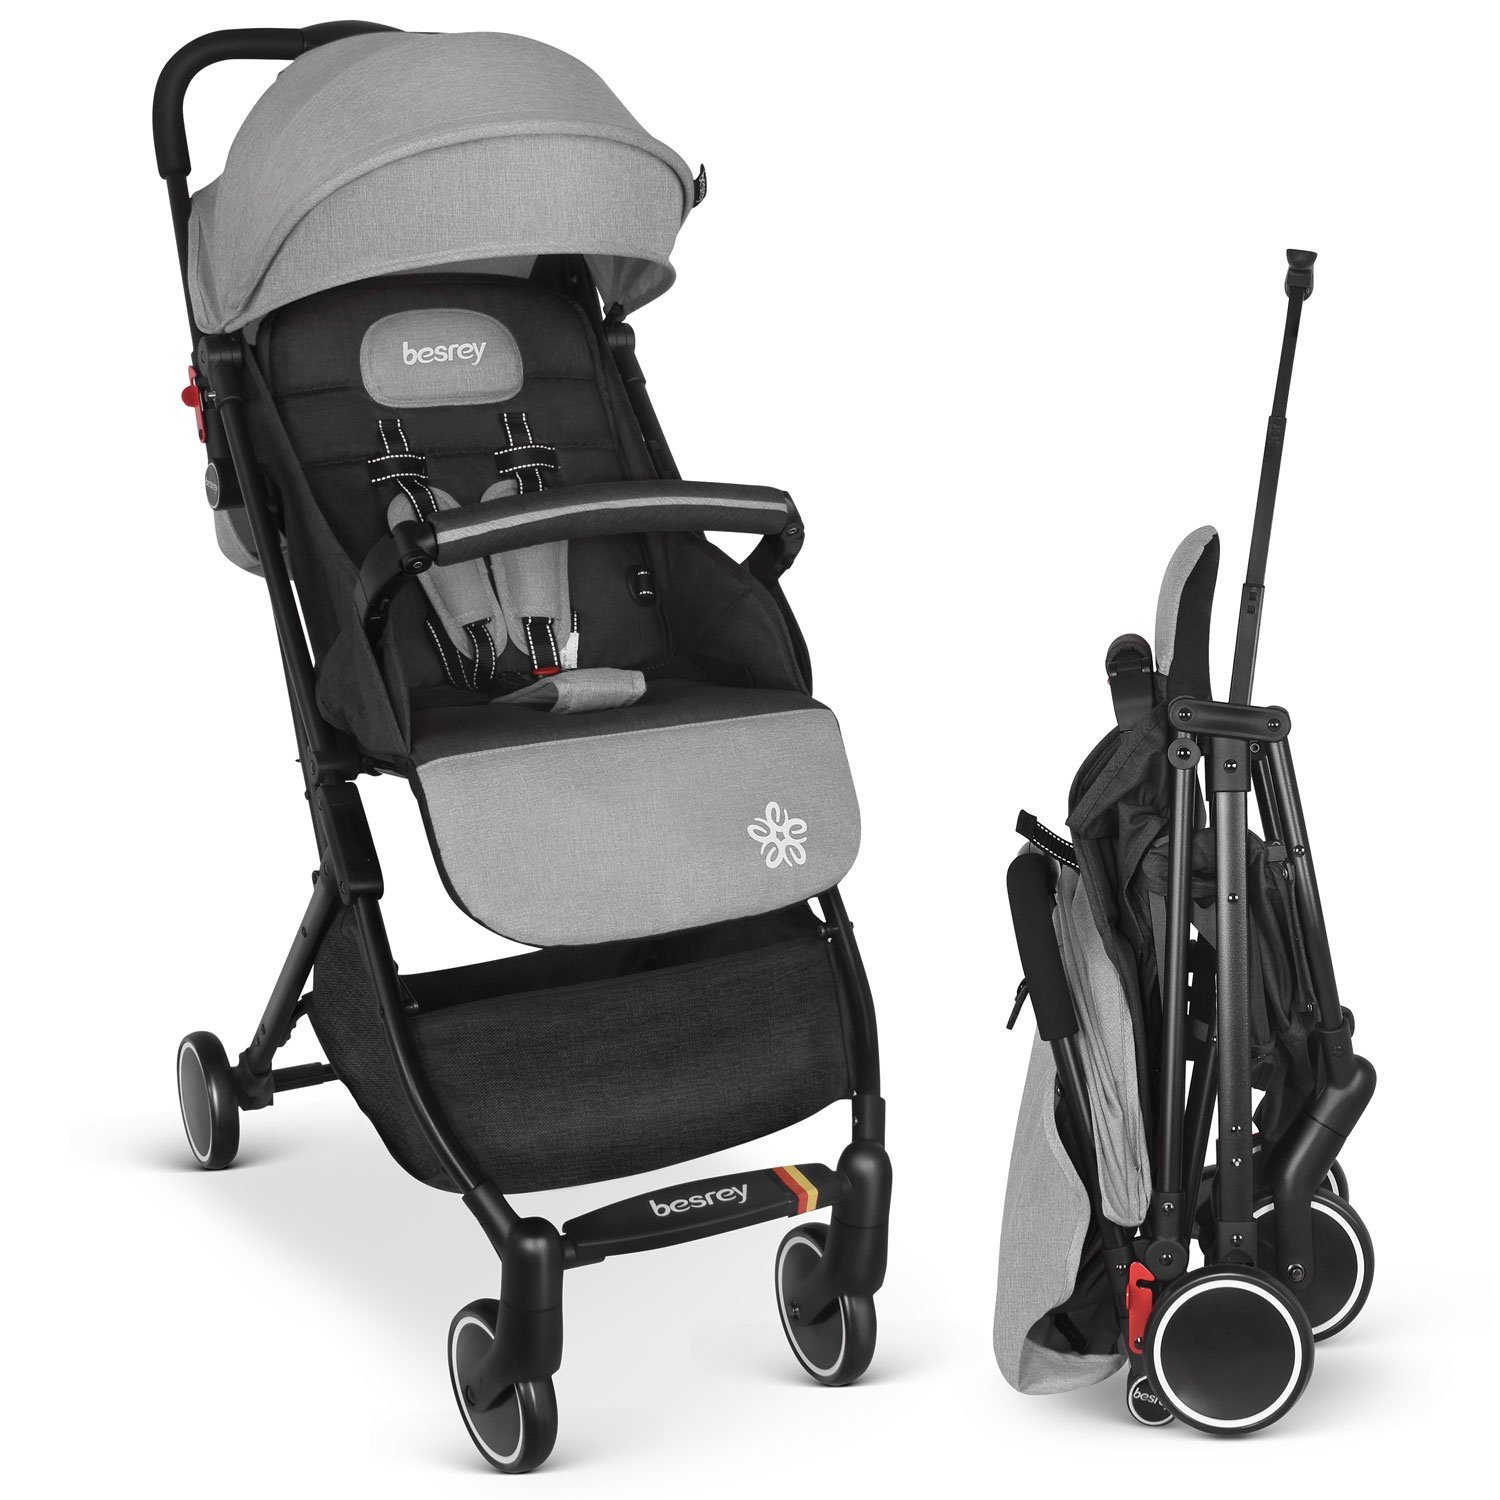 Besrey Baby Stroller Pram Baby Carriage Baby Pushchair Suitable for Airplane - Gray